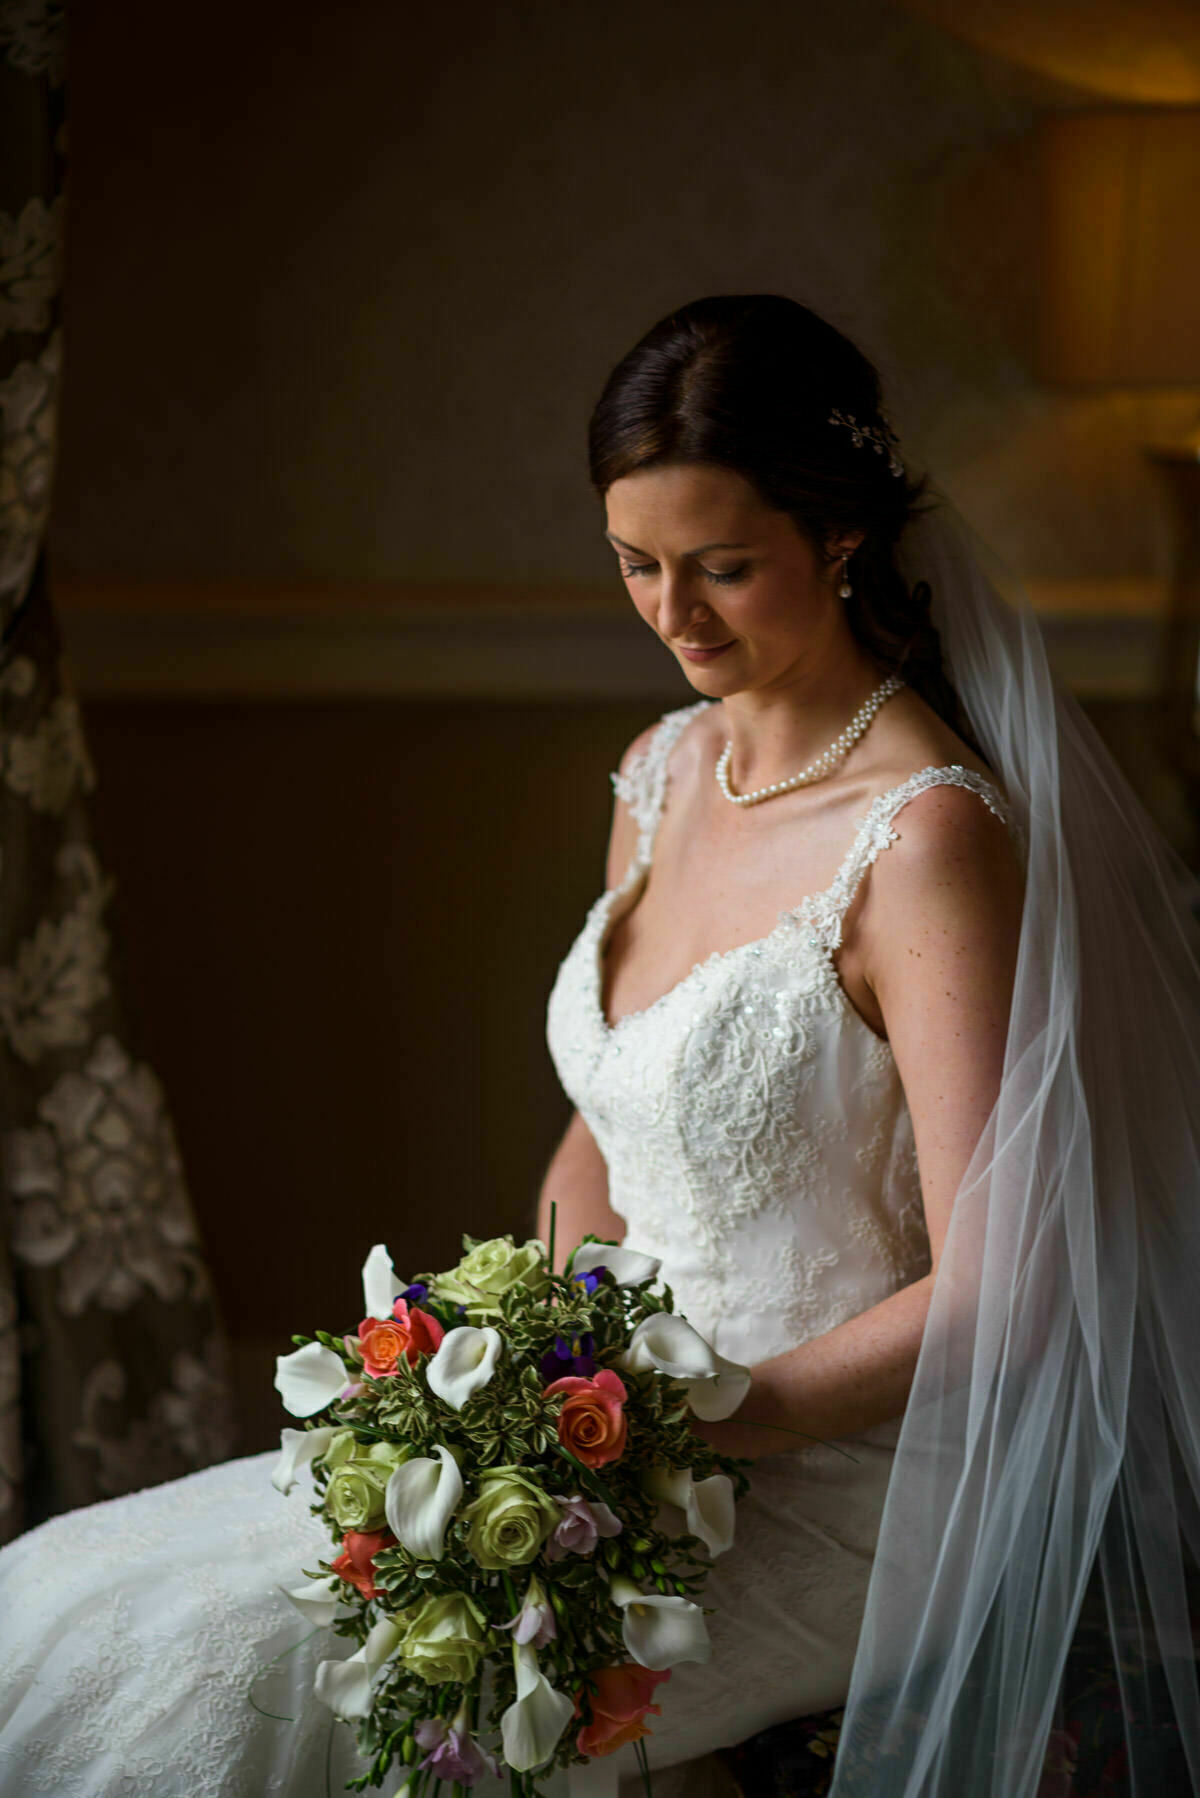 Bridal prep at Clearwell castle